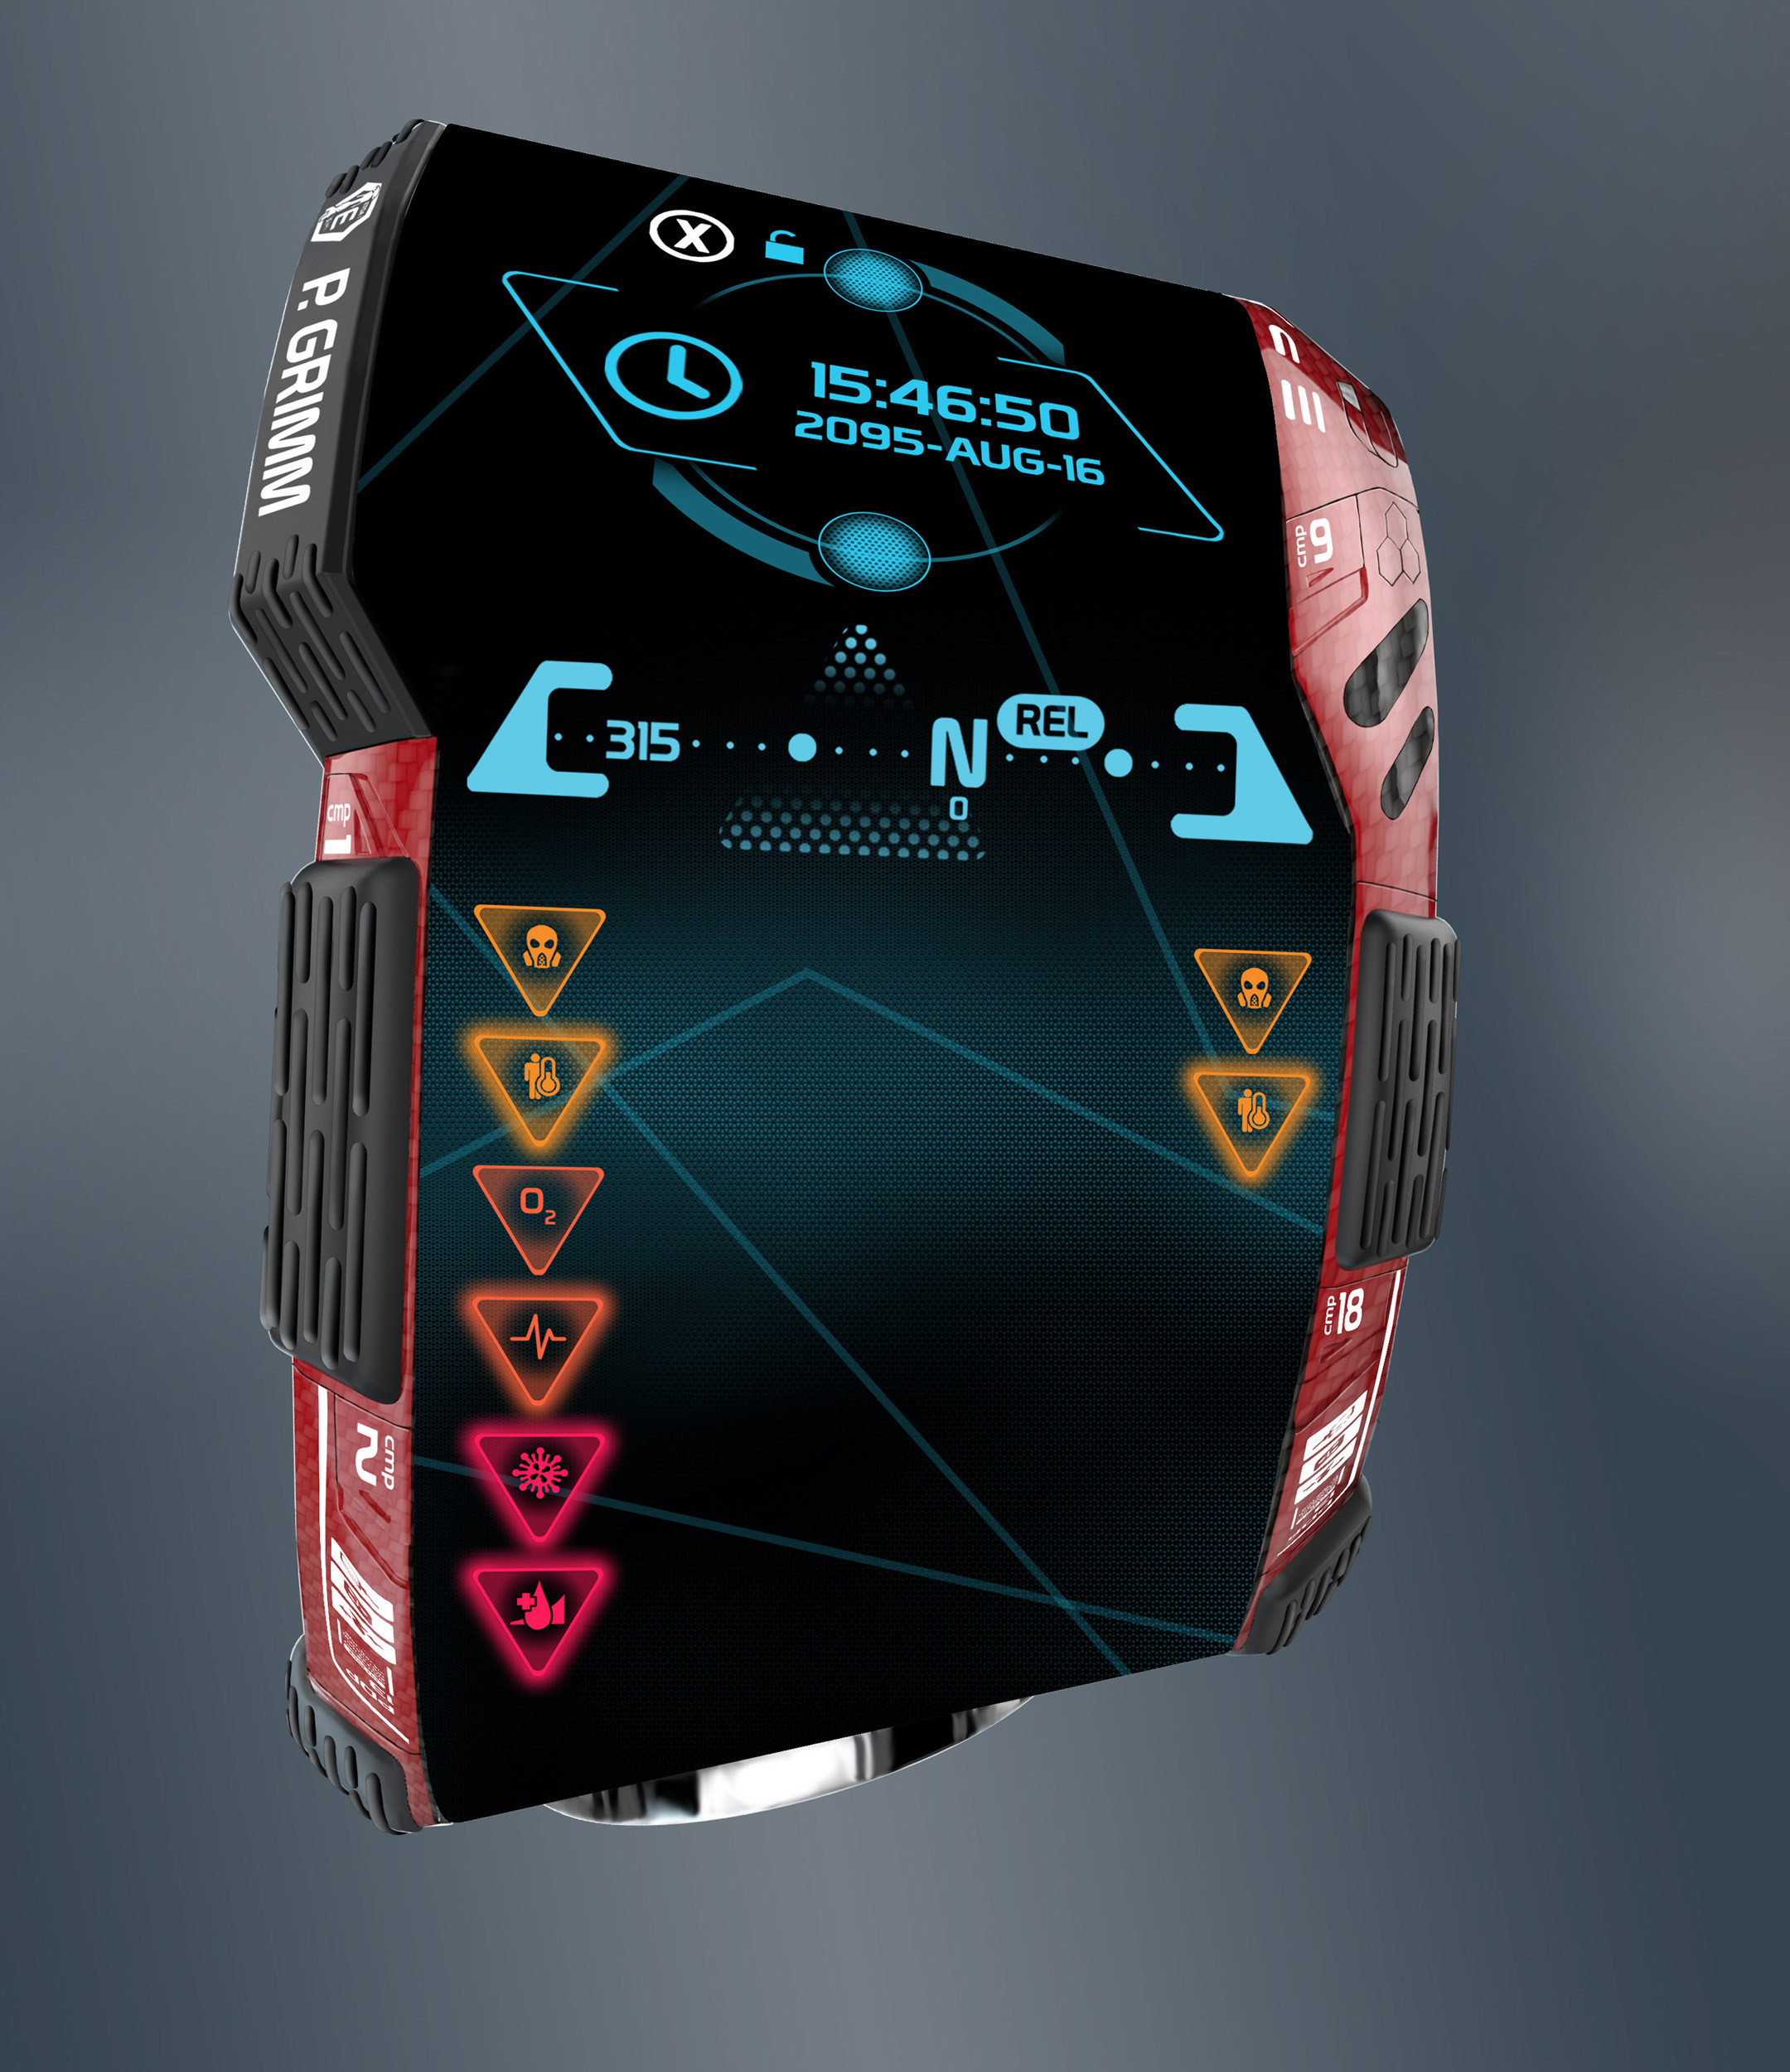 Grimm Odds - EPI Cuff UI - Notification Icons